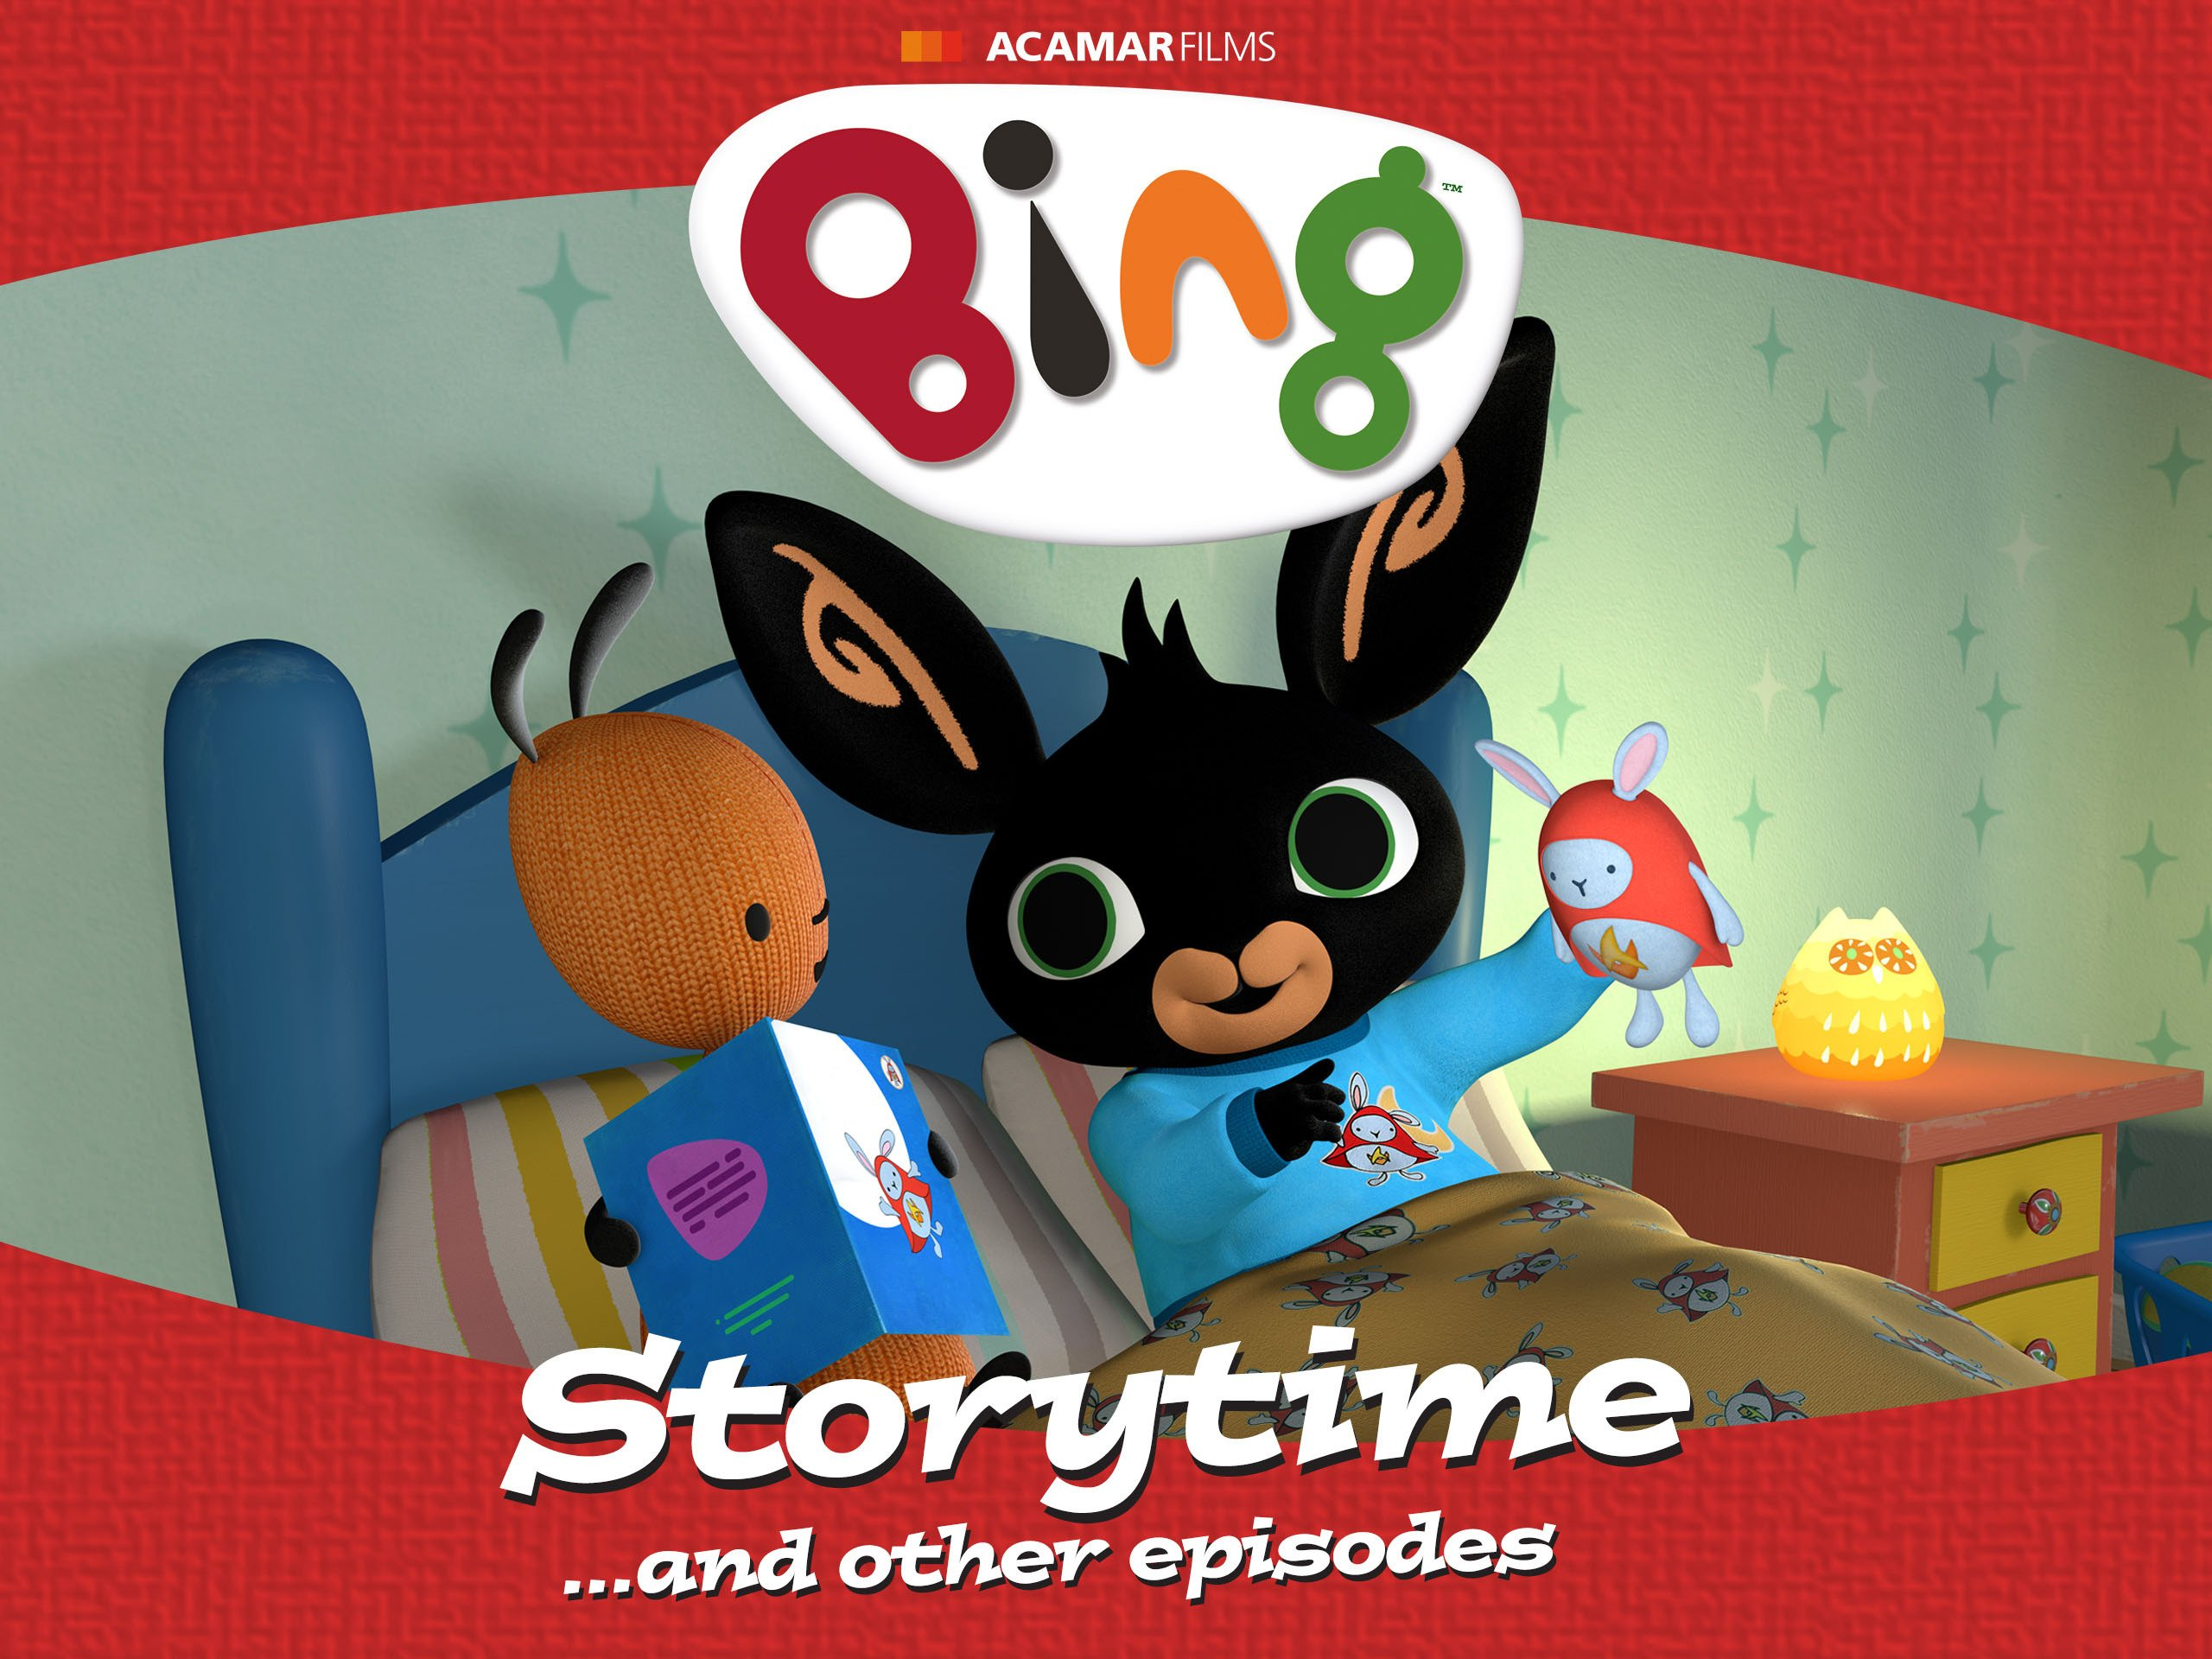 Bing Storytime & Other Episodes - Season 2